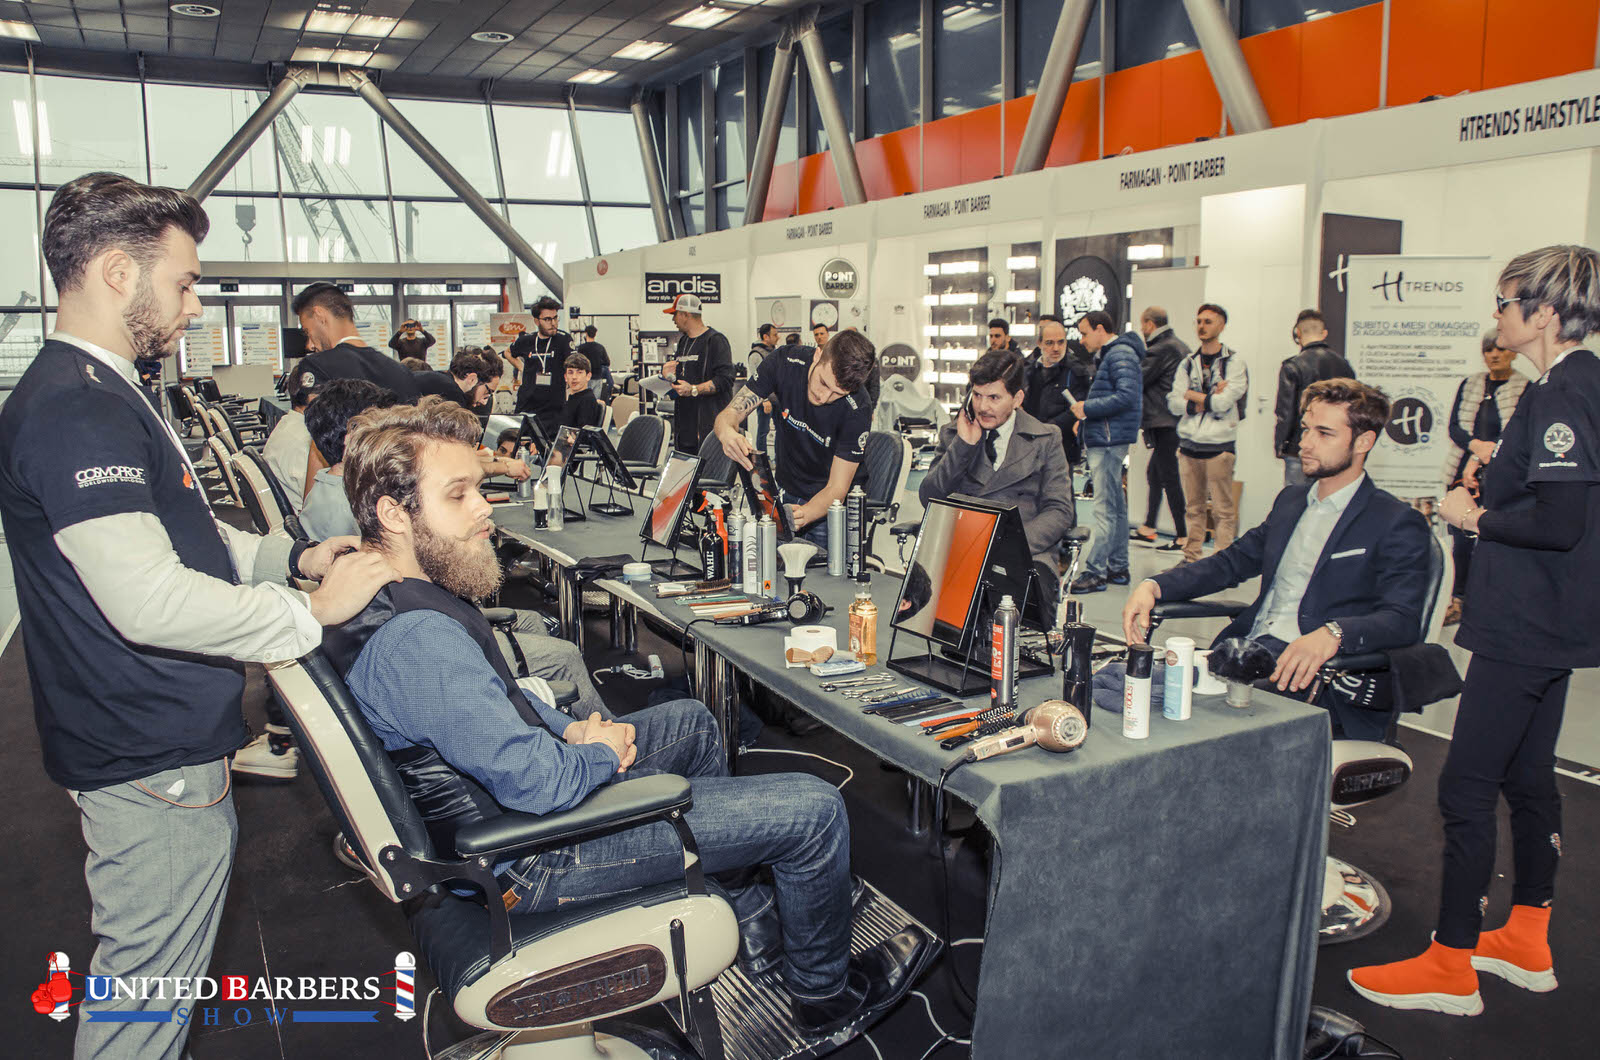 United Barber Show 2019 - Cosmoprof